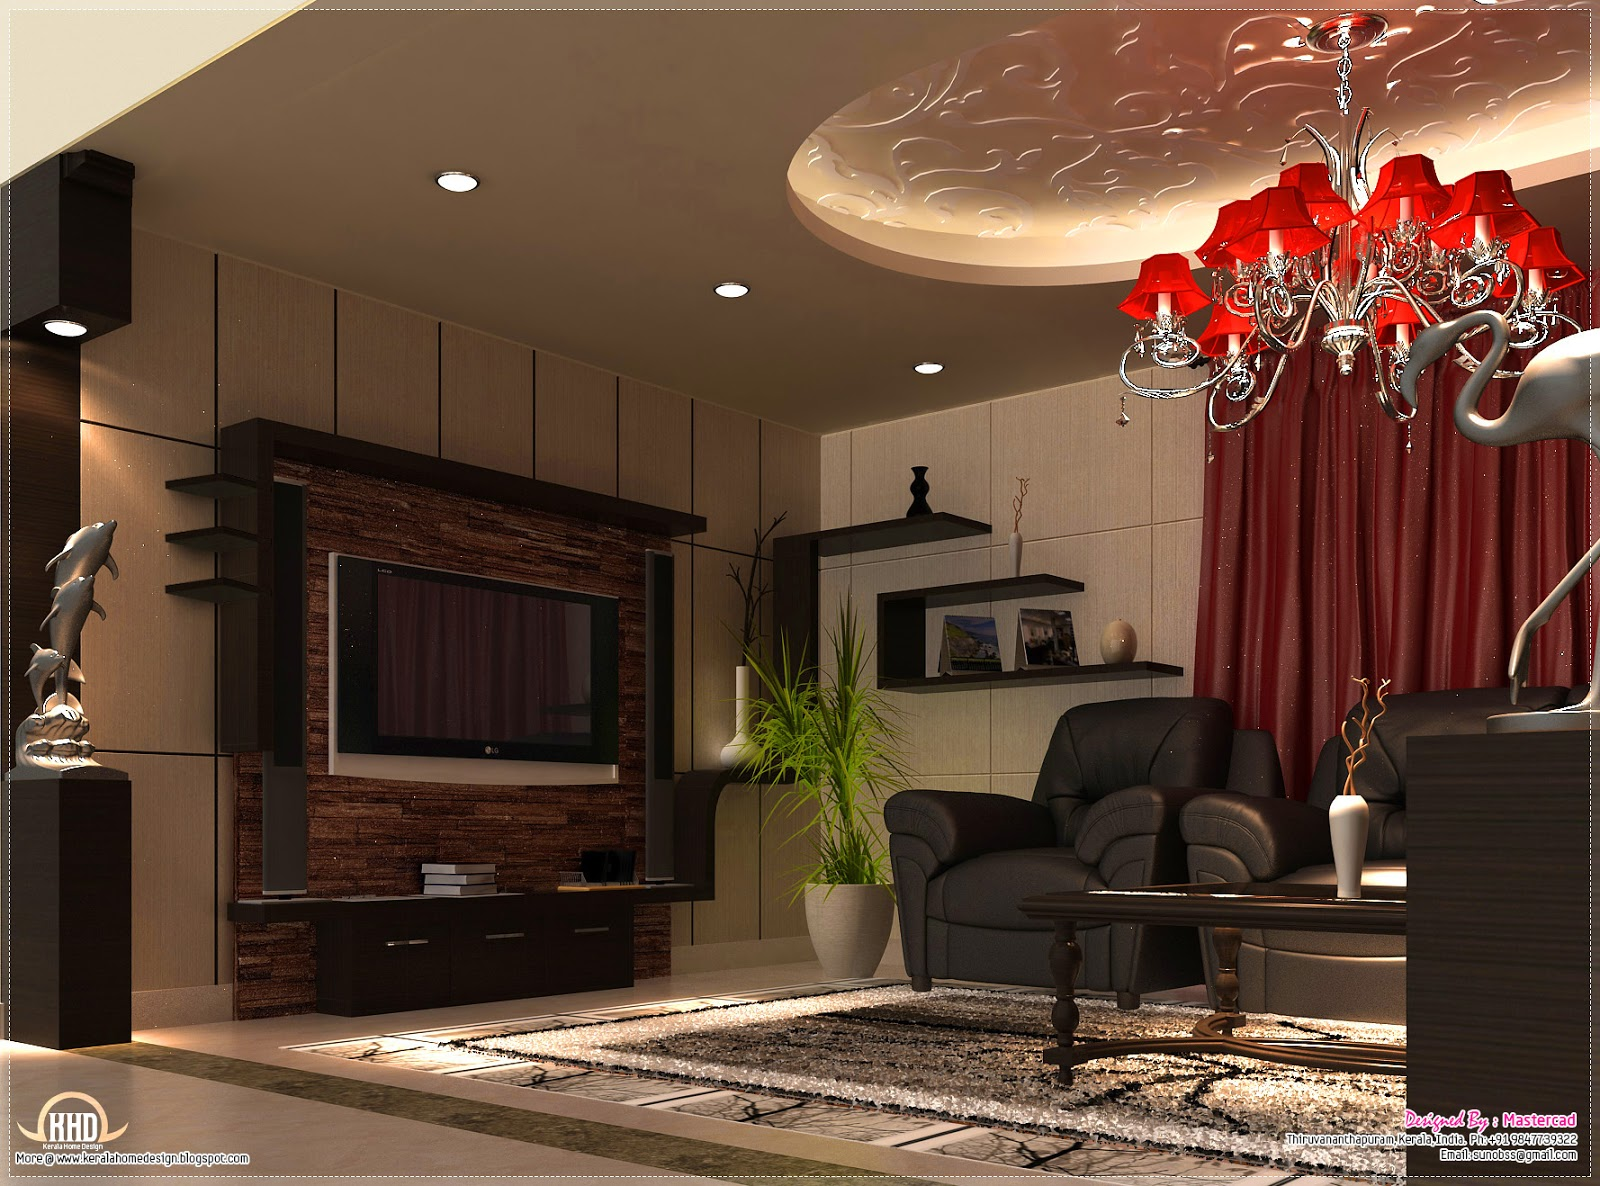 Interior design ideas kerala home design and floor plans for Home inside decoration photos